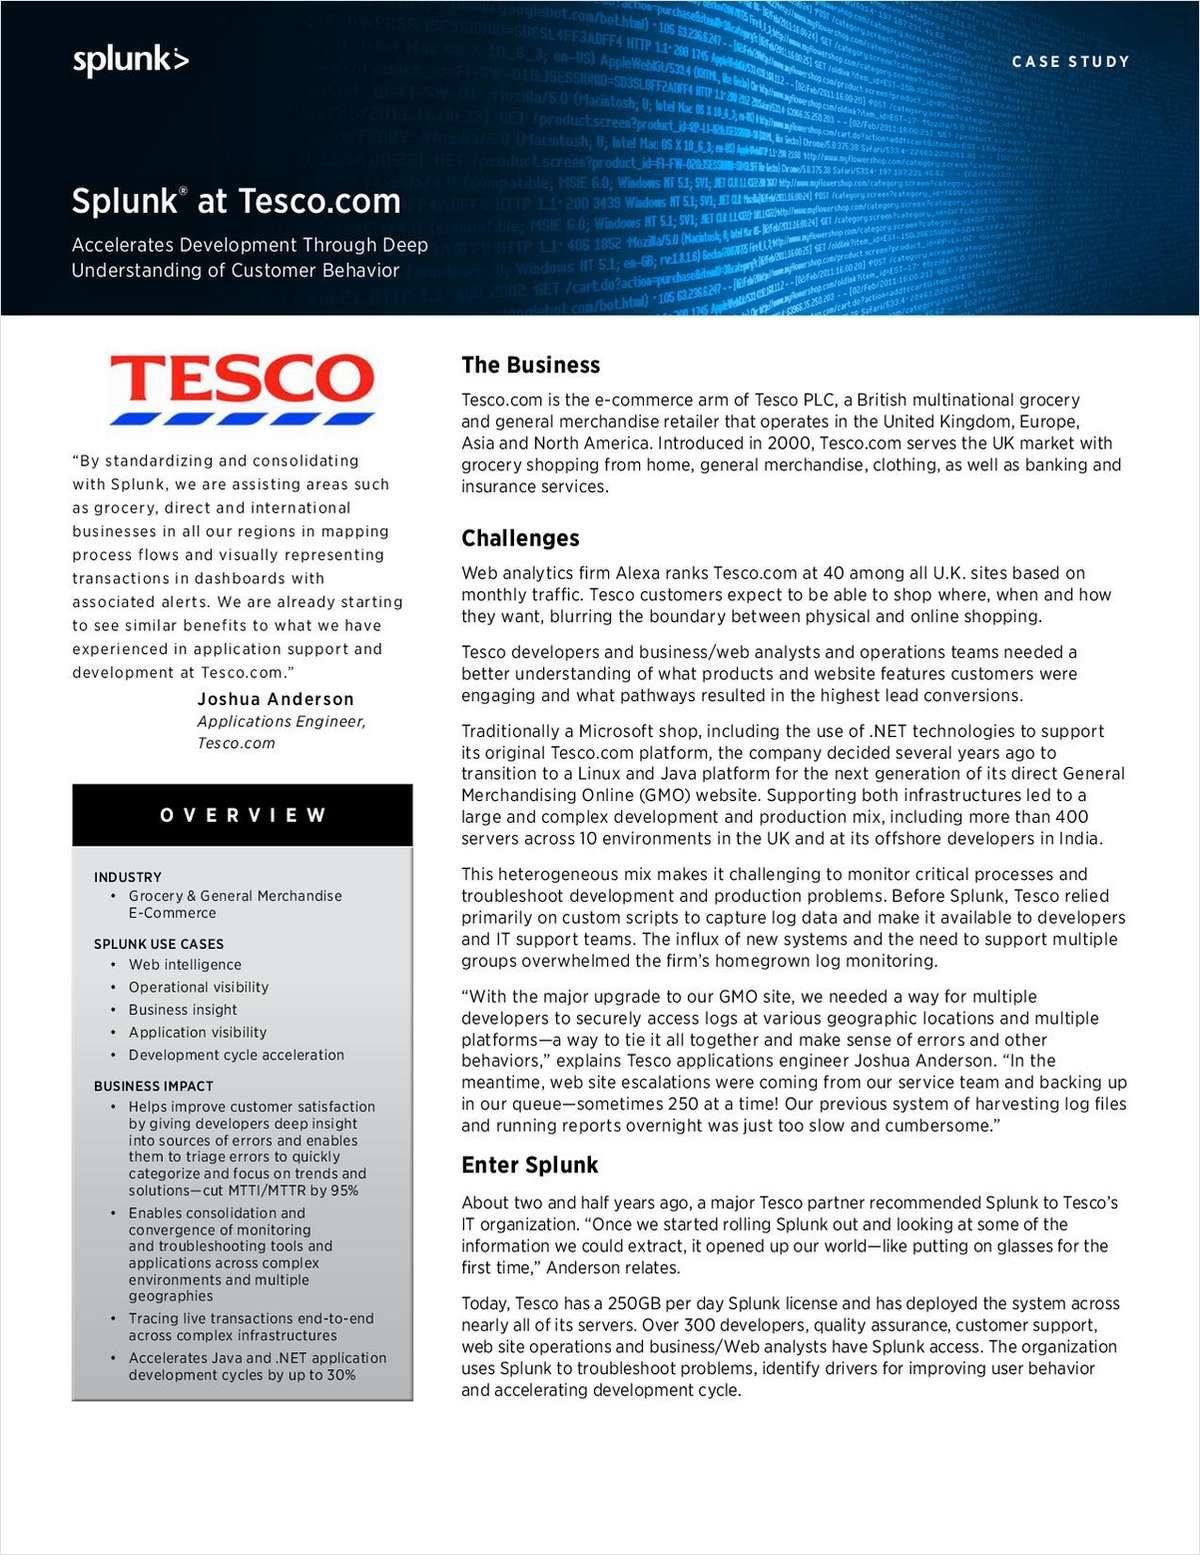 Tesco Uses Splunk to Improve the Online Customer Experience